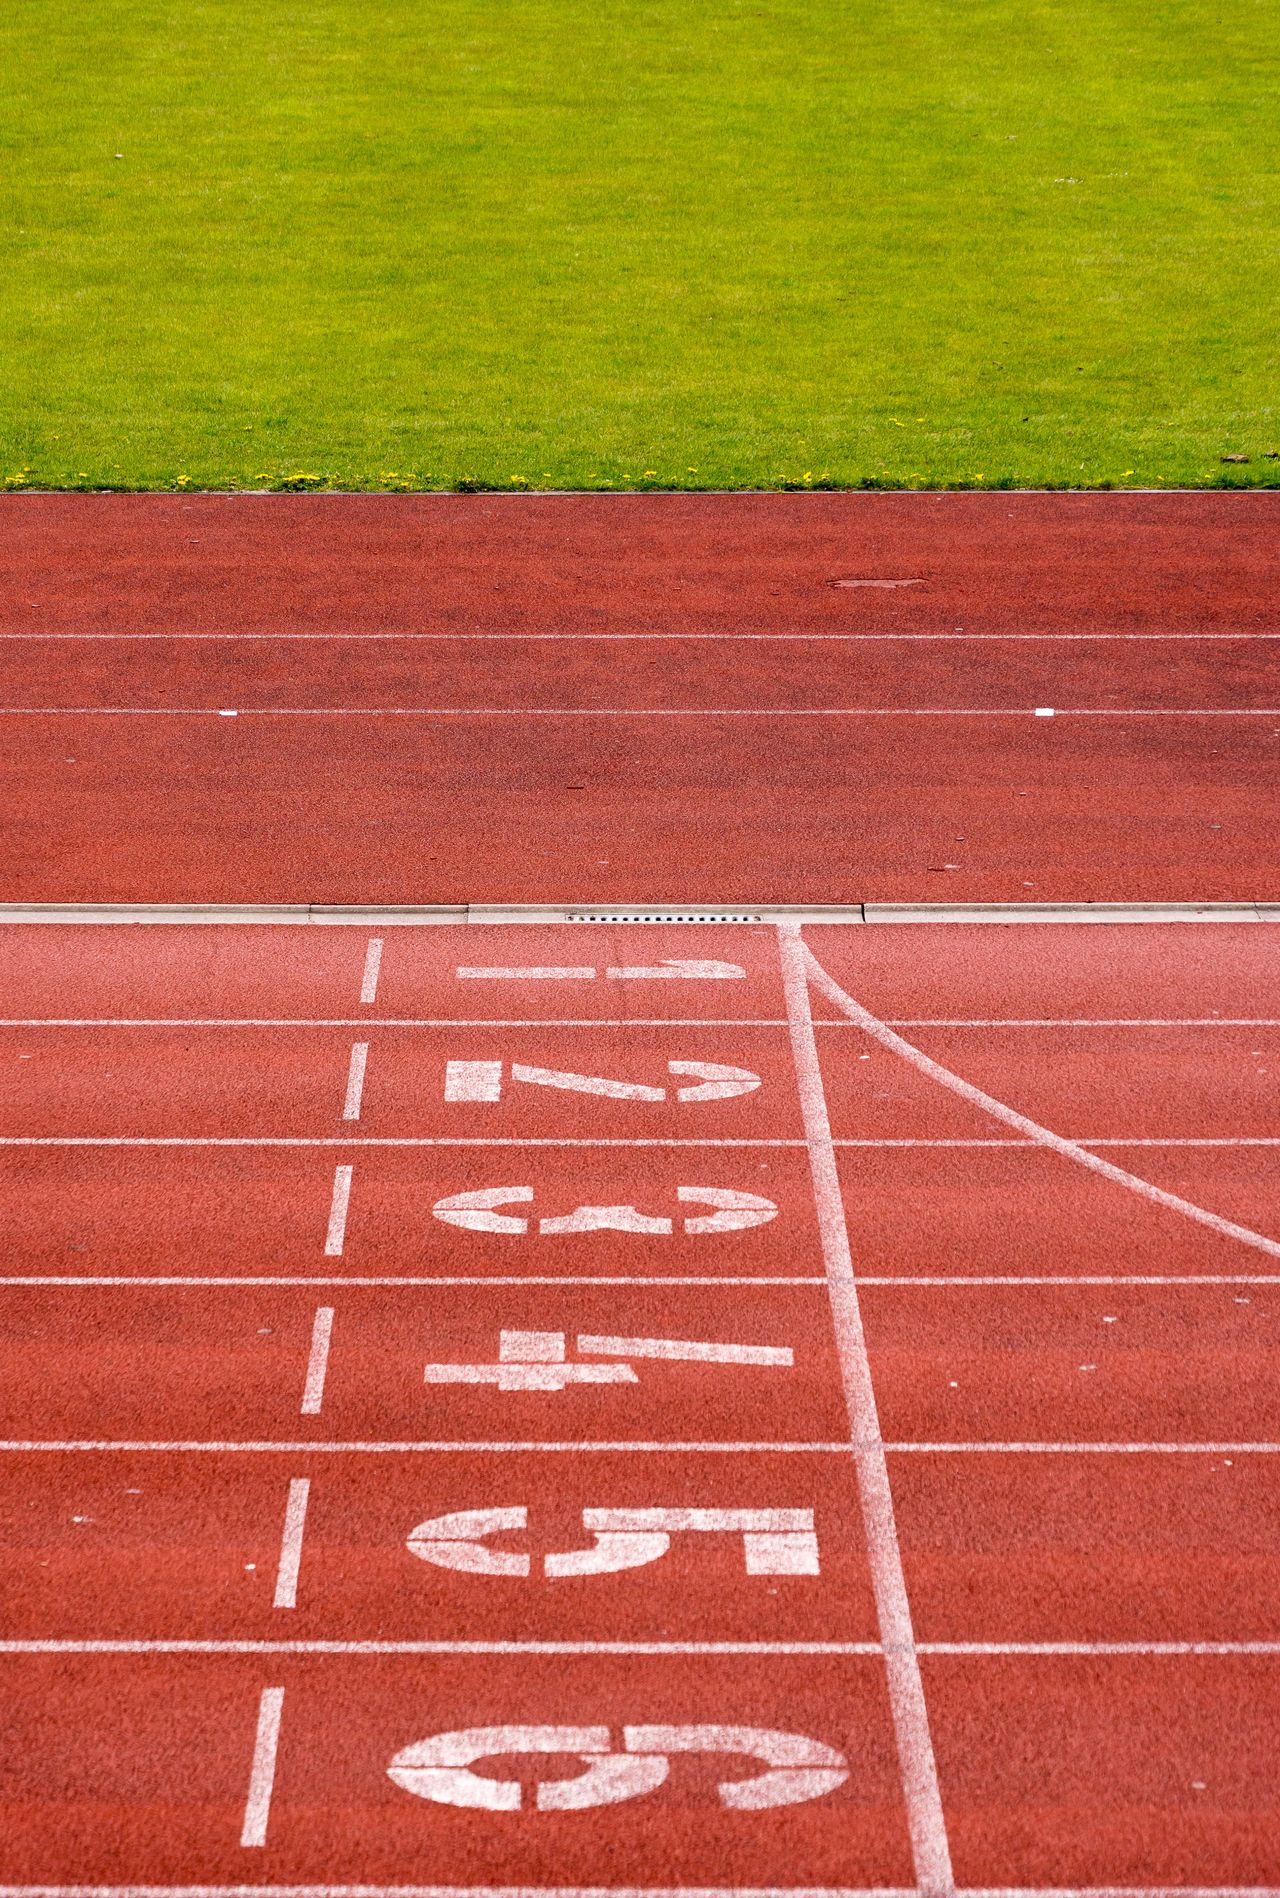 Absence Day Finish Line  Grass High Angle View Hopscotch No People Number Objective Outdoors Red Running Track Sport Sports Race Sports Track Starting Line Target Team Teamwork Track And Field Track And Field Event Track And Field Stadium Track Event Break The Mold